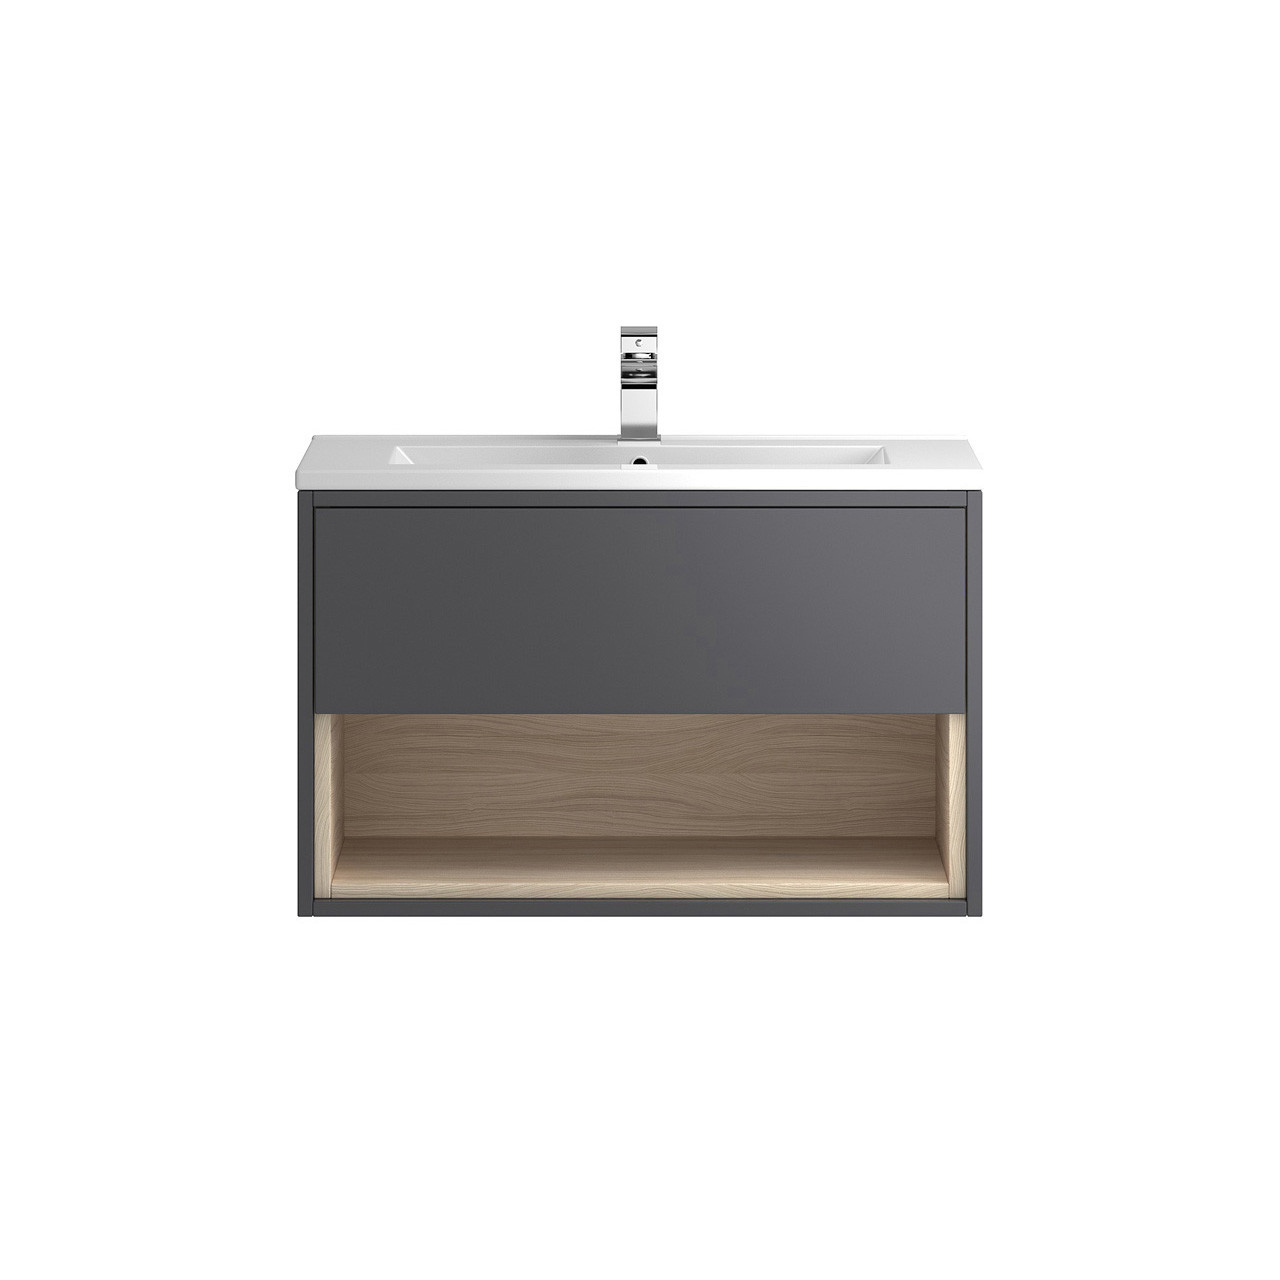 Hudson Reed Coast Grey Gloss Wall Hung 800mm Cabinet & 18mm profile Basin - FMC888 & NVM005